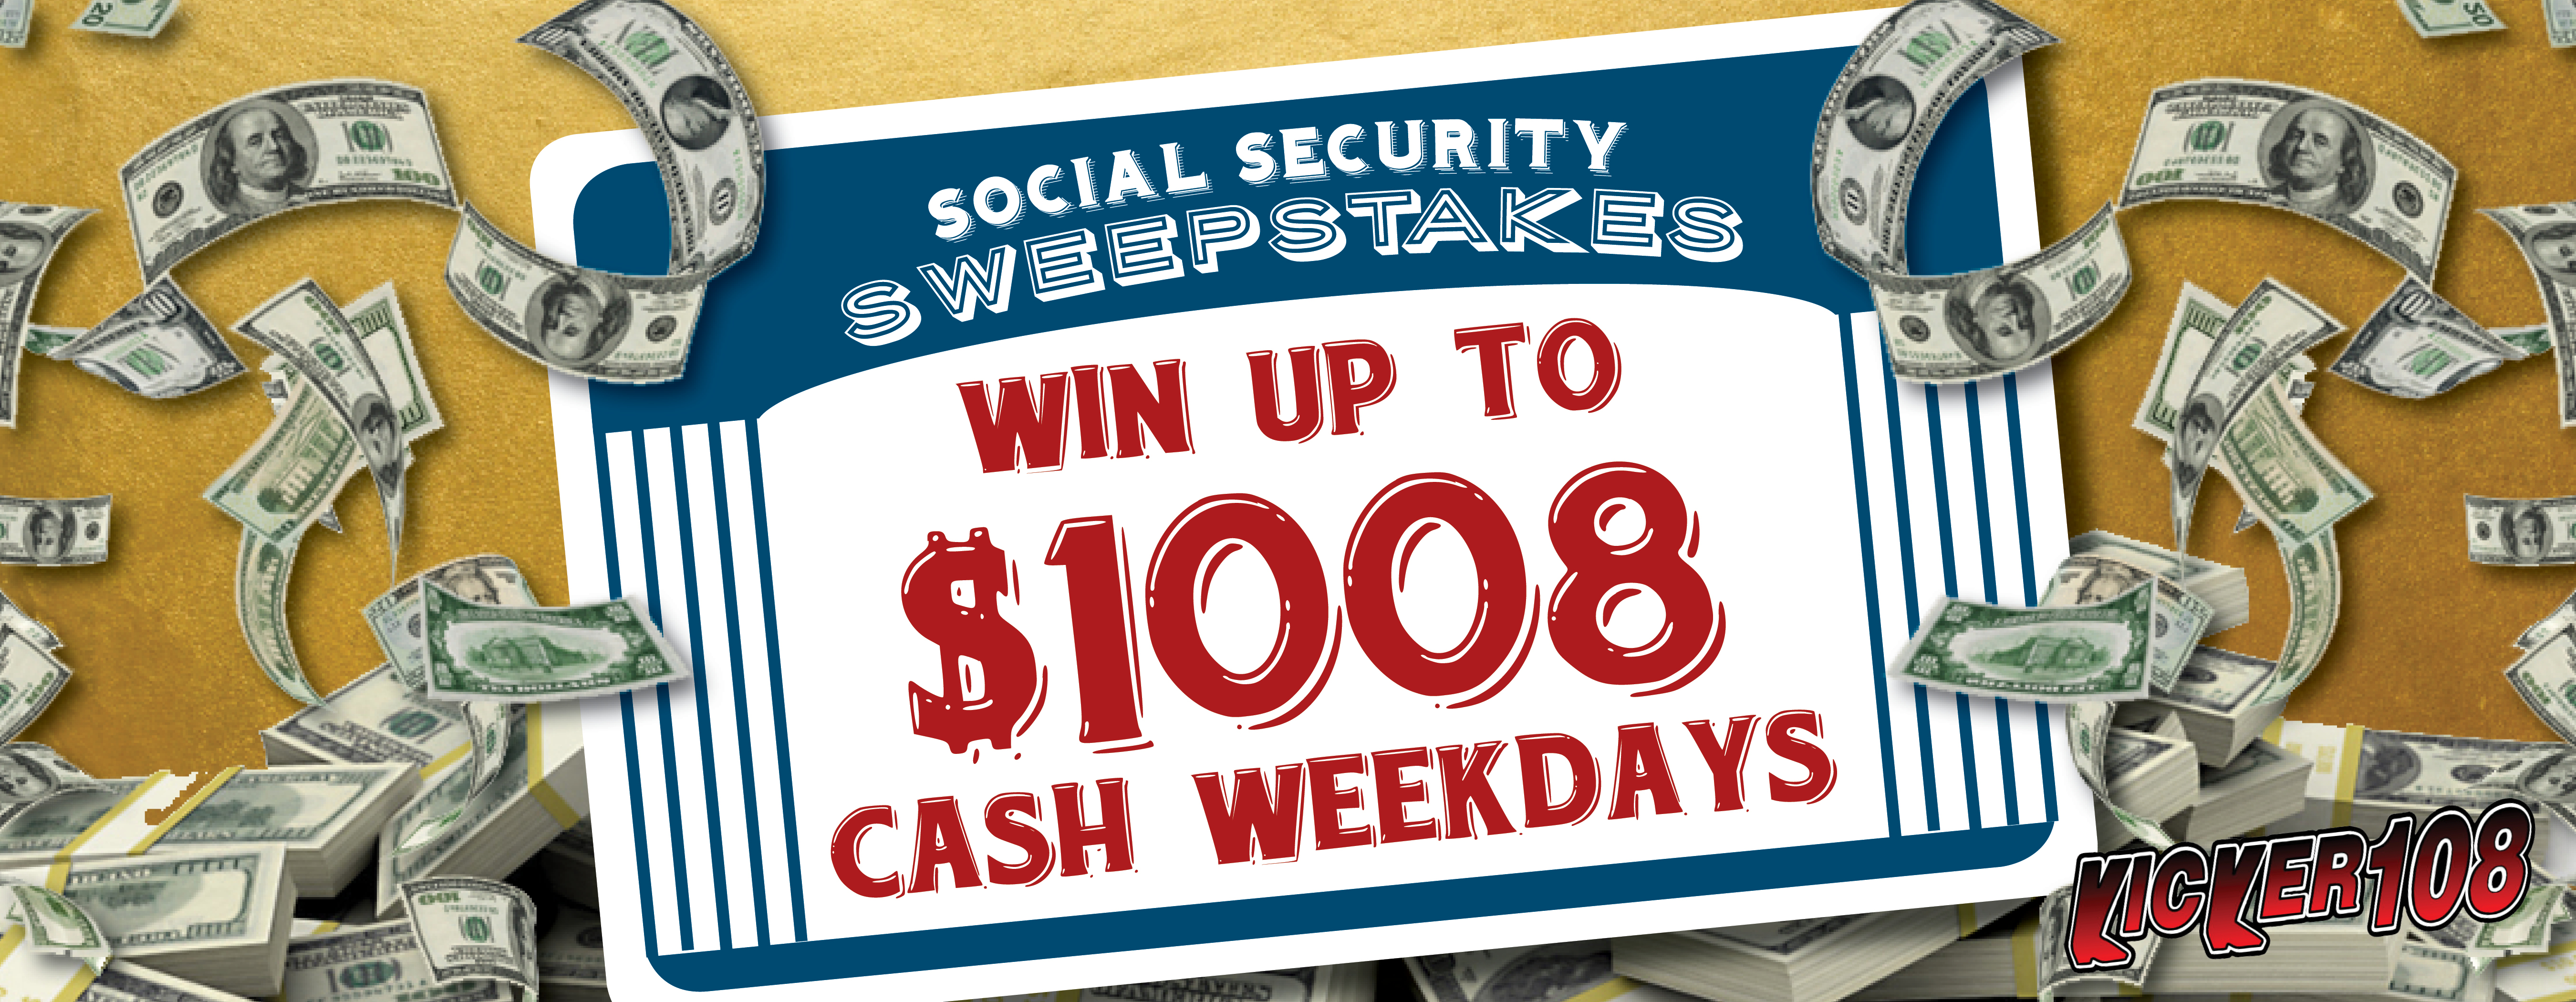 Social Security Sweepstakes